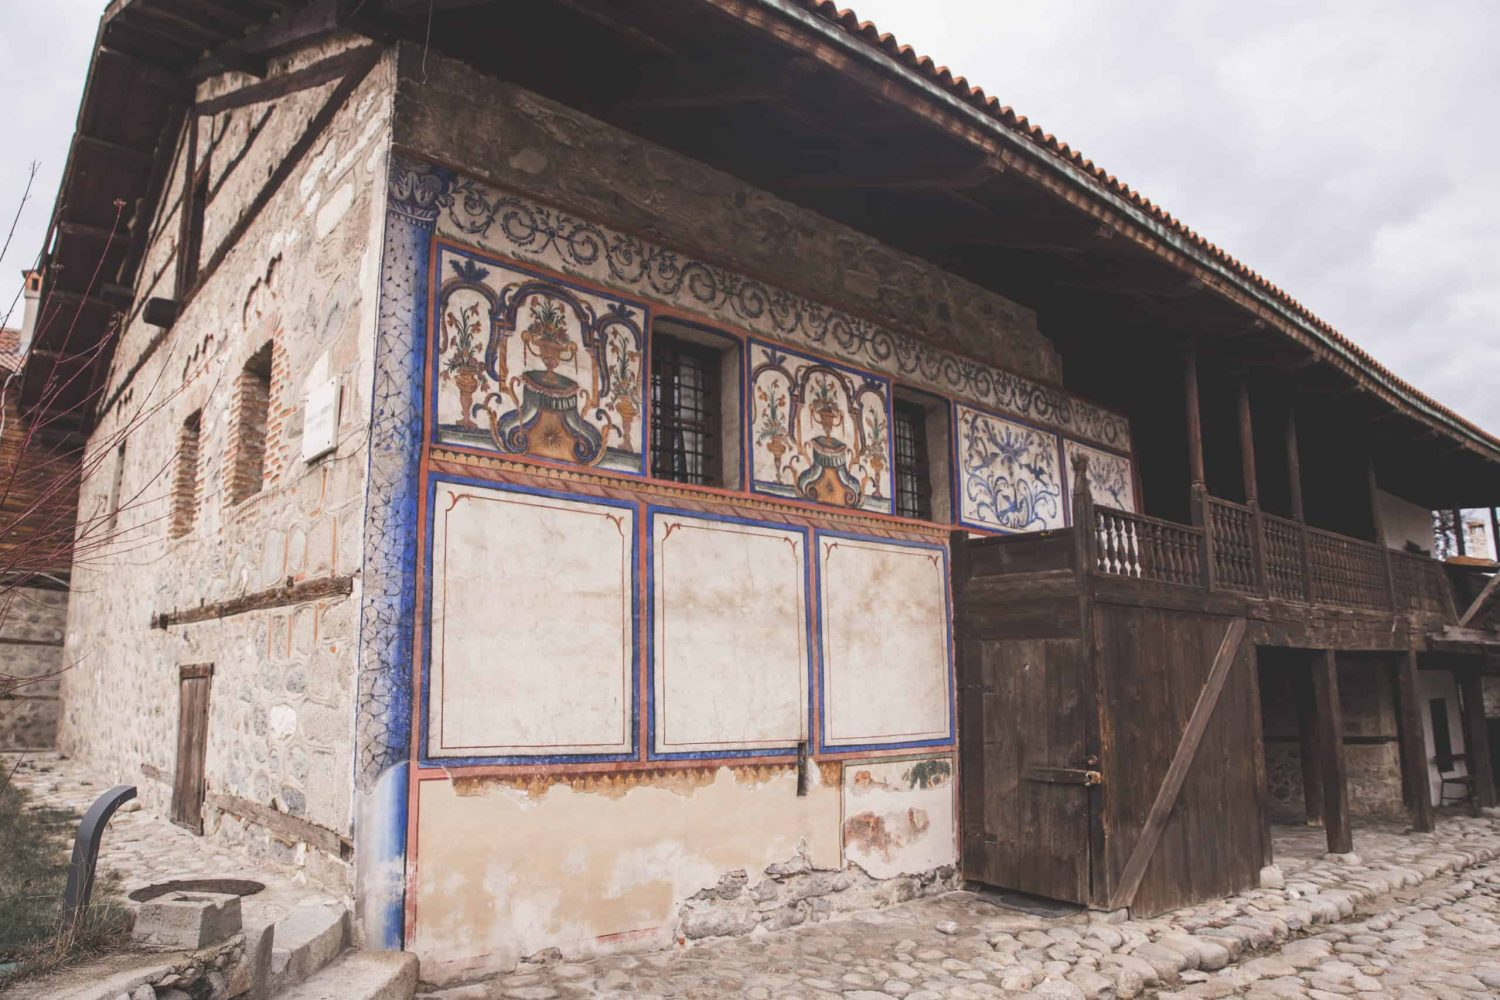 The outside of the Velyanova House in Bansko, Bulgaria, an old traditional Bulgarian house.